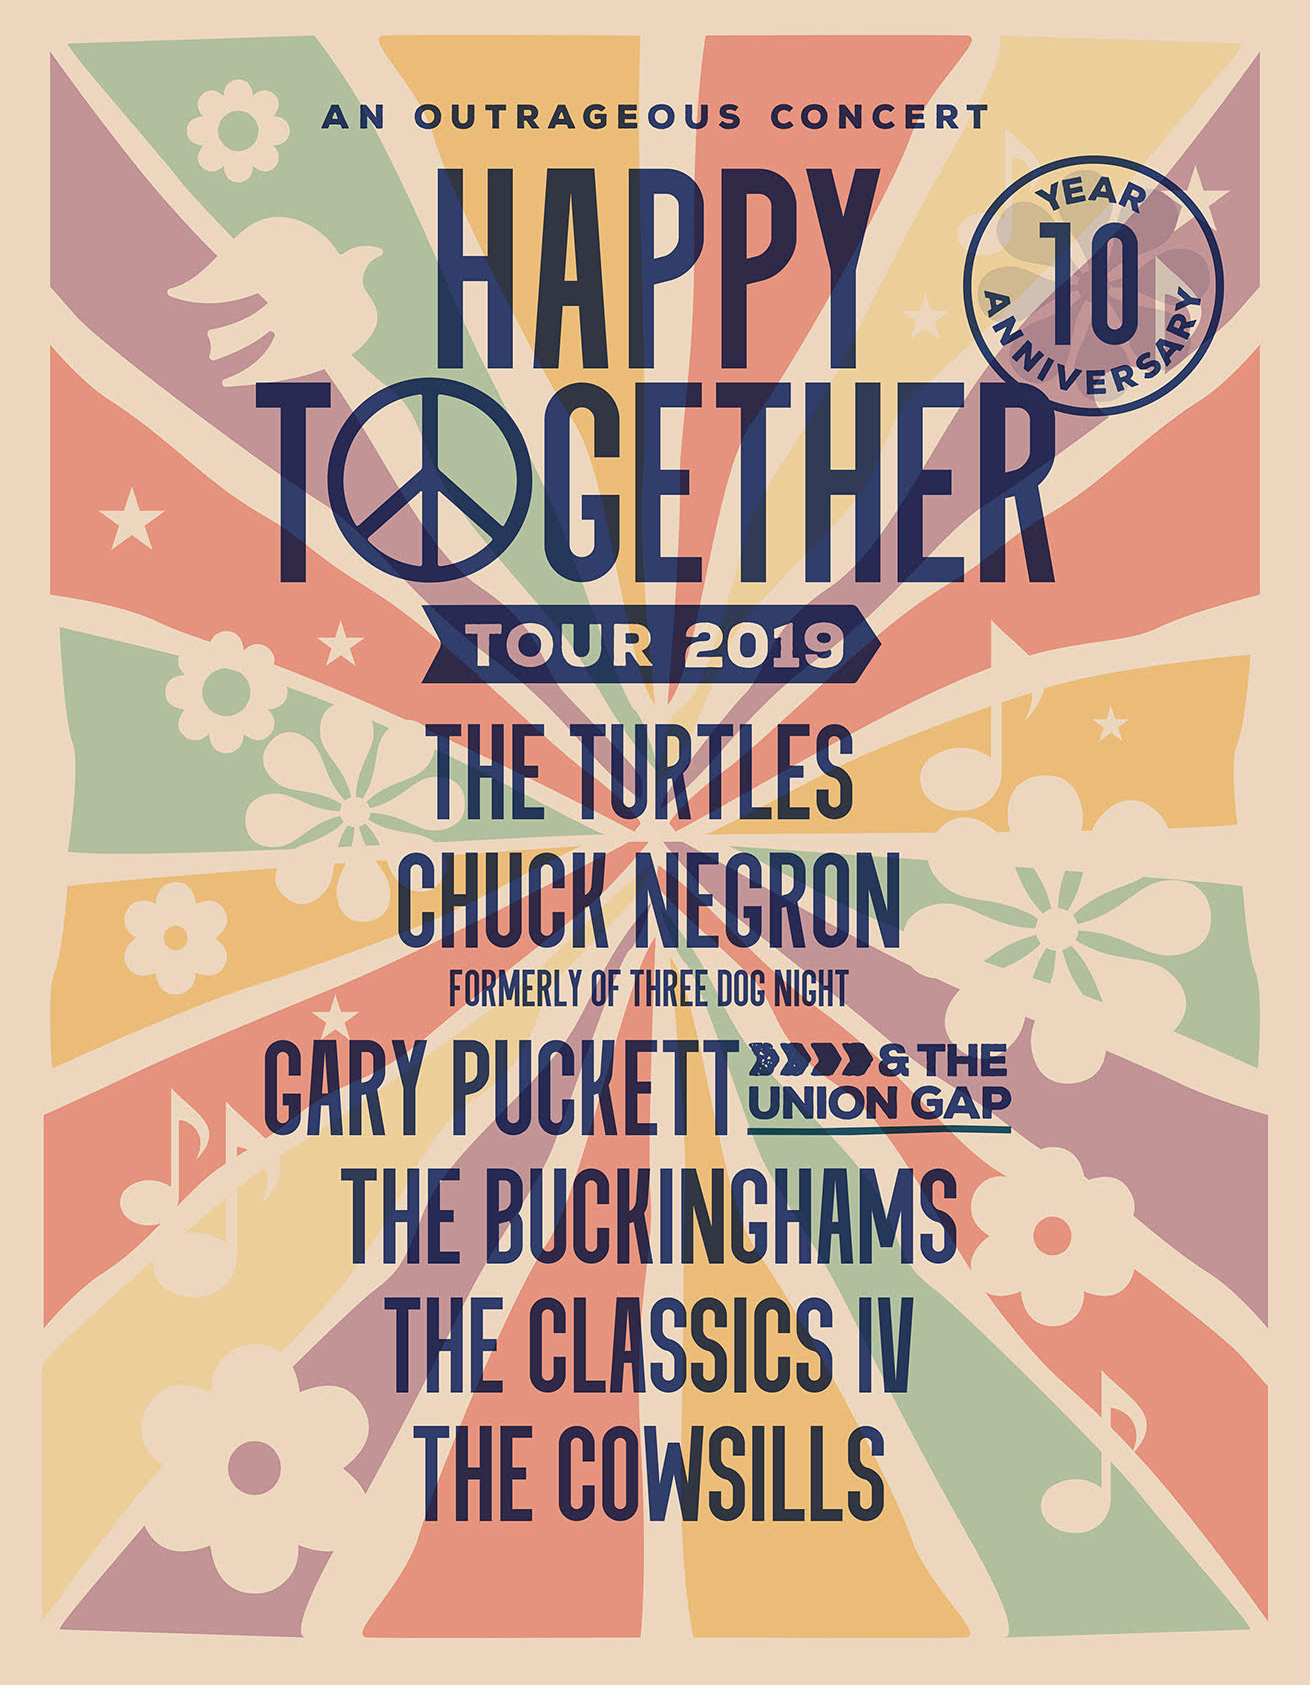 - A BENEFIT CONCERT FOR THE LIGHT OF DAY FOUNDATIONON SALE NOW!! The Greatest Pop Rock Hits of the 60's-70's!The audience will go home whistling the soundtrack their lives!THE TURTLESCHUCK NEGRON (Former lead vocalist of Three Dog Night)GARY PUCKETT AND THE UNION GAPTHE BUCKINGHAMSTHE CLASSICS IVTHE COWSILLSDoors: 7pm - Show: 8pmProduced by UMTPresents, Sammy Boyd Productions and Madison Marquette for the LODF, a 501 C3 Non-profit Org.